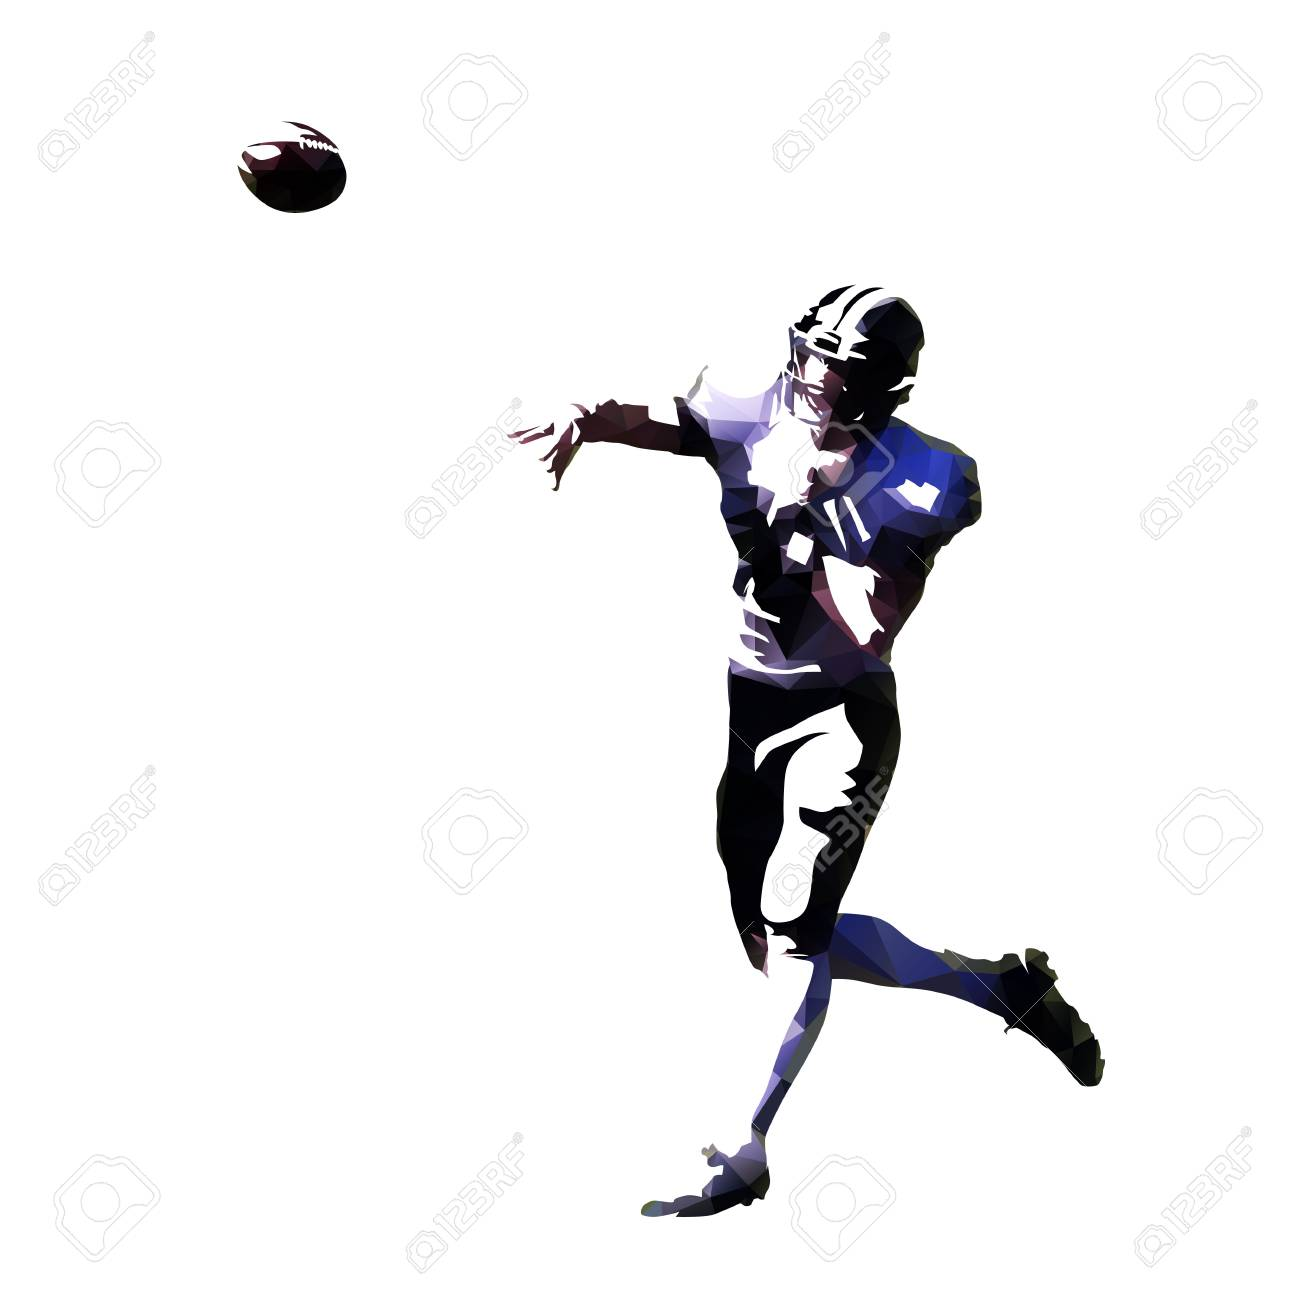 American Football Player Throwing Ball Abstract Geometric Vector